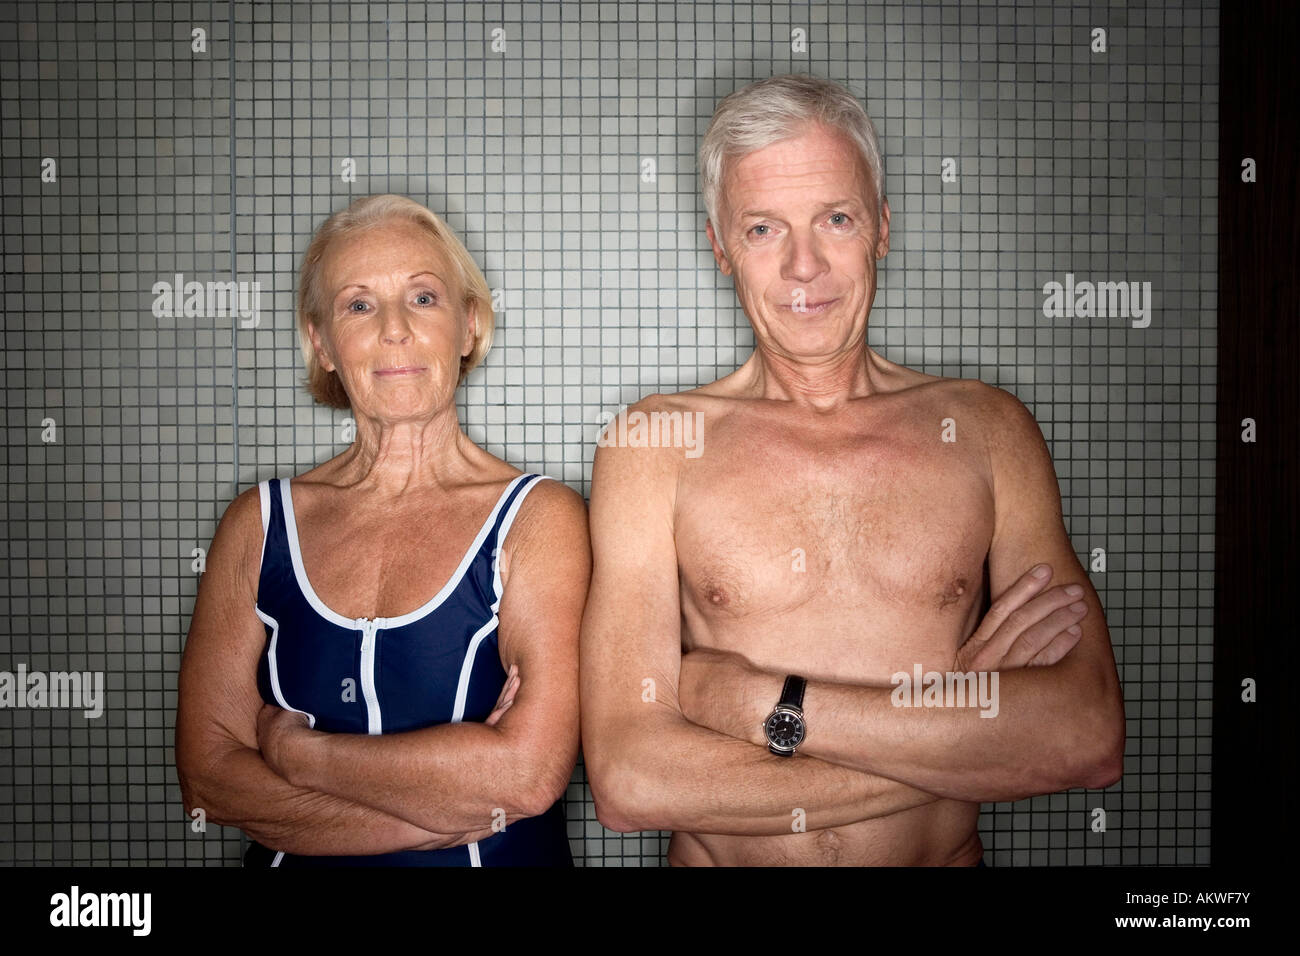 Senior couple in changing room - Stock Image